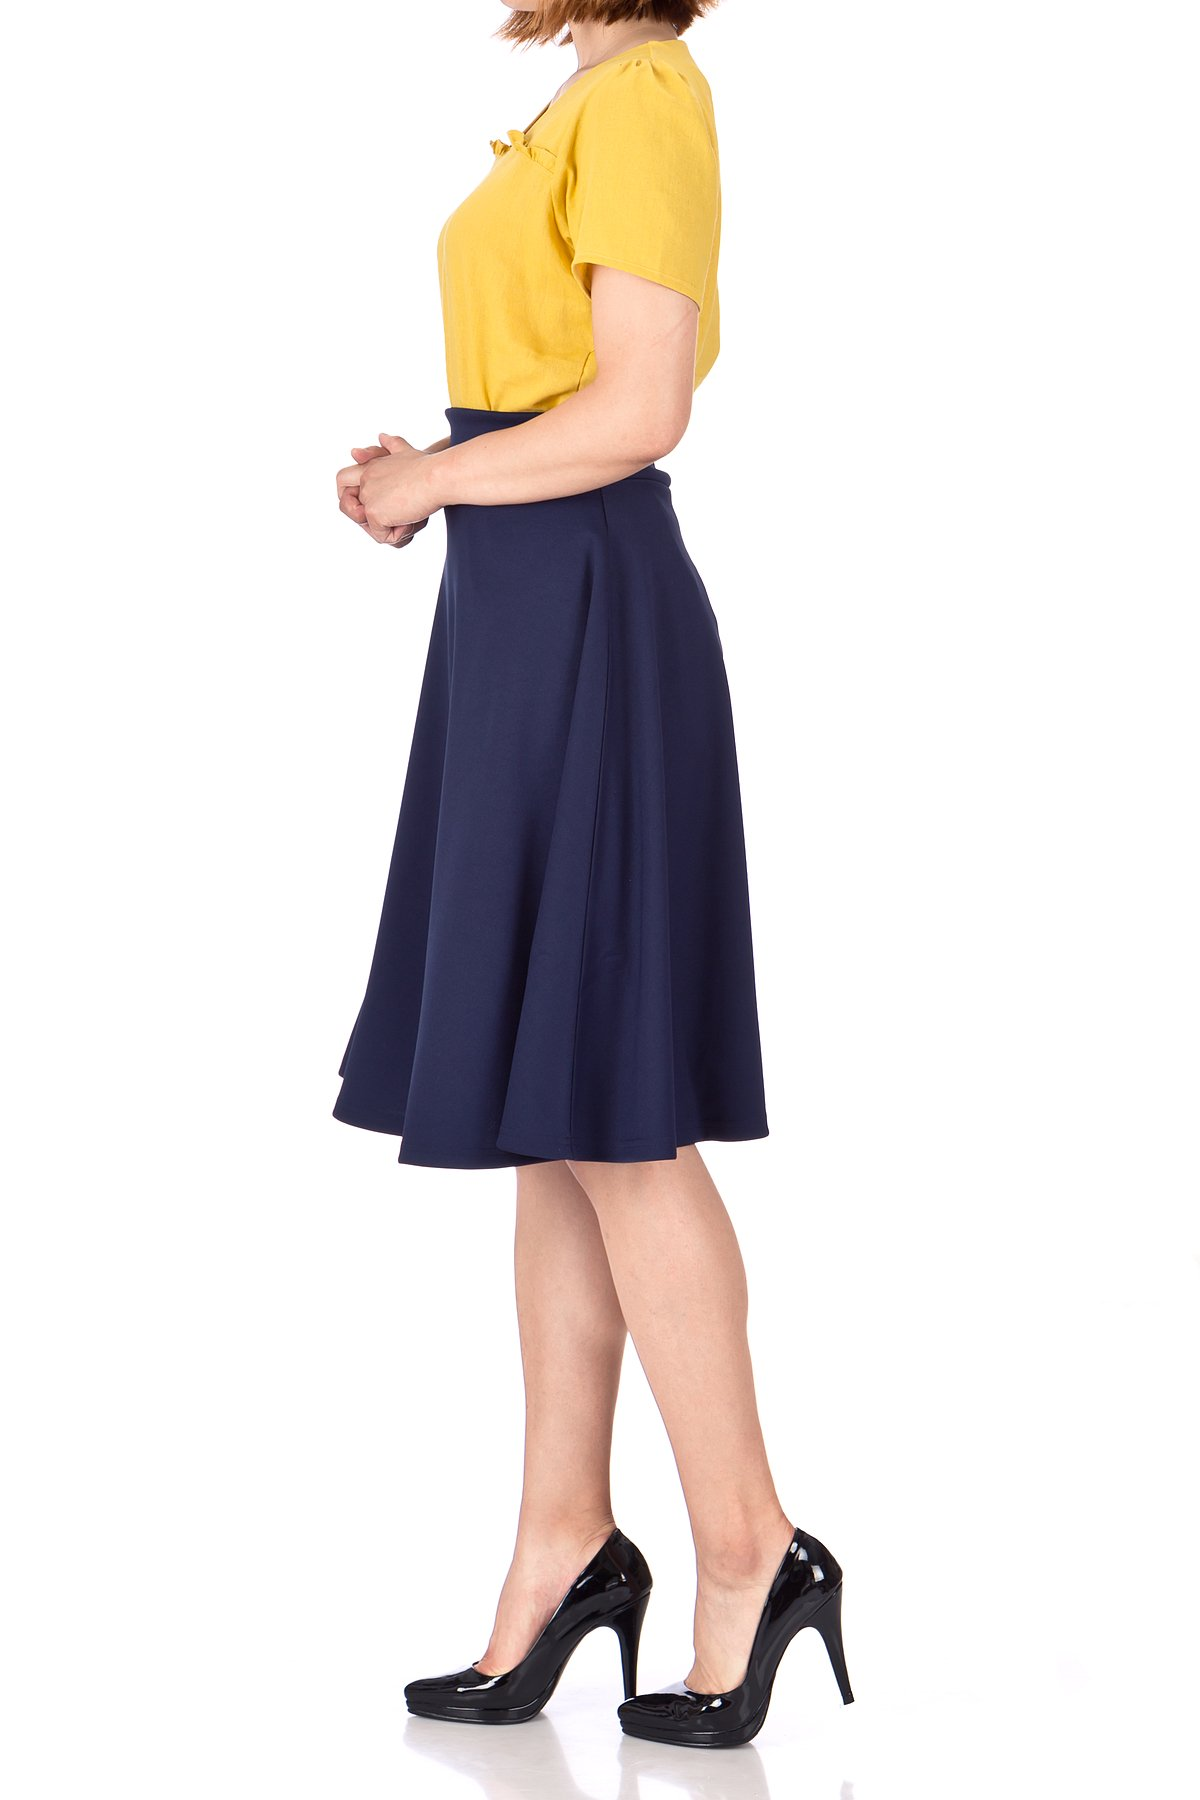 Stunning Wide High Waist A line Full Flared Swing Office Dance Party Casual Circle Skater Midi Skirt Navy 04